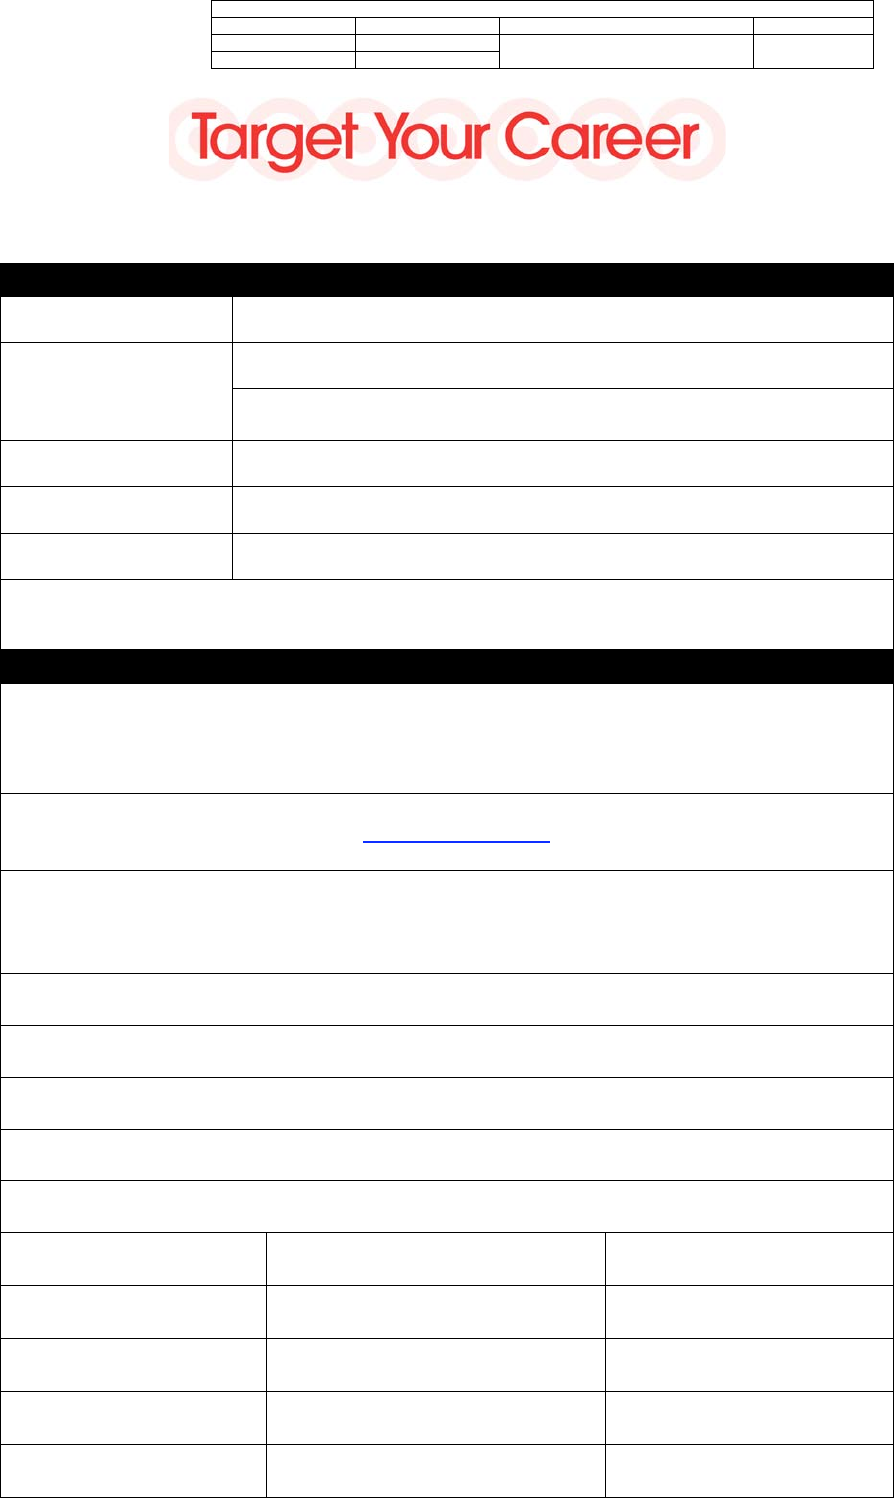 Free Printable Target Job Application Form – Target Job Application